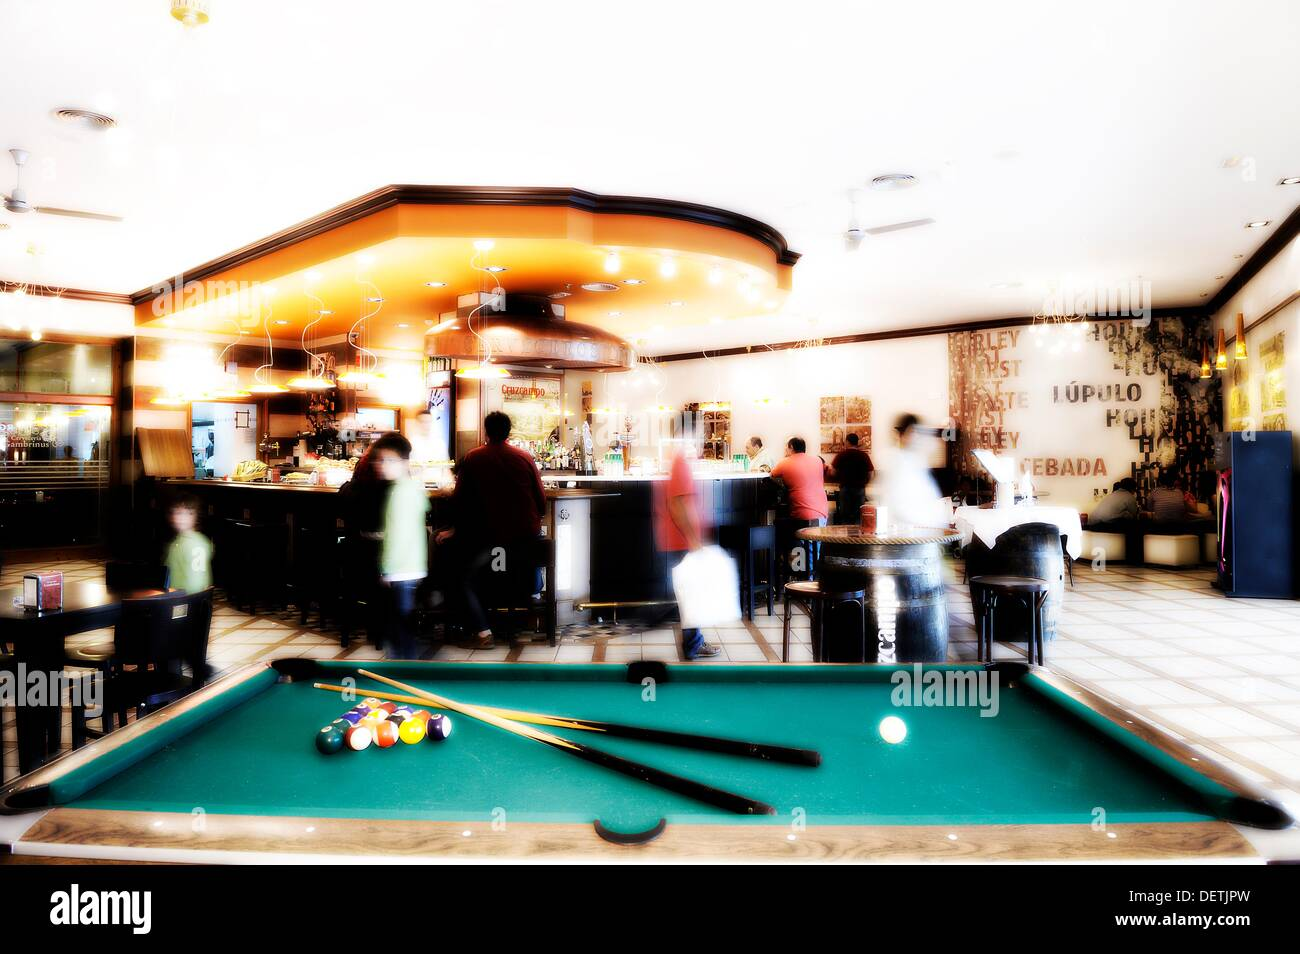 Pool Table Inside A Snack Bar Stock Photo Alamy - Inside a pool table